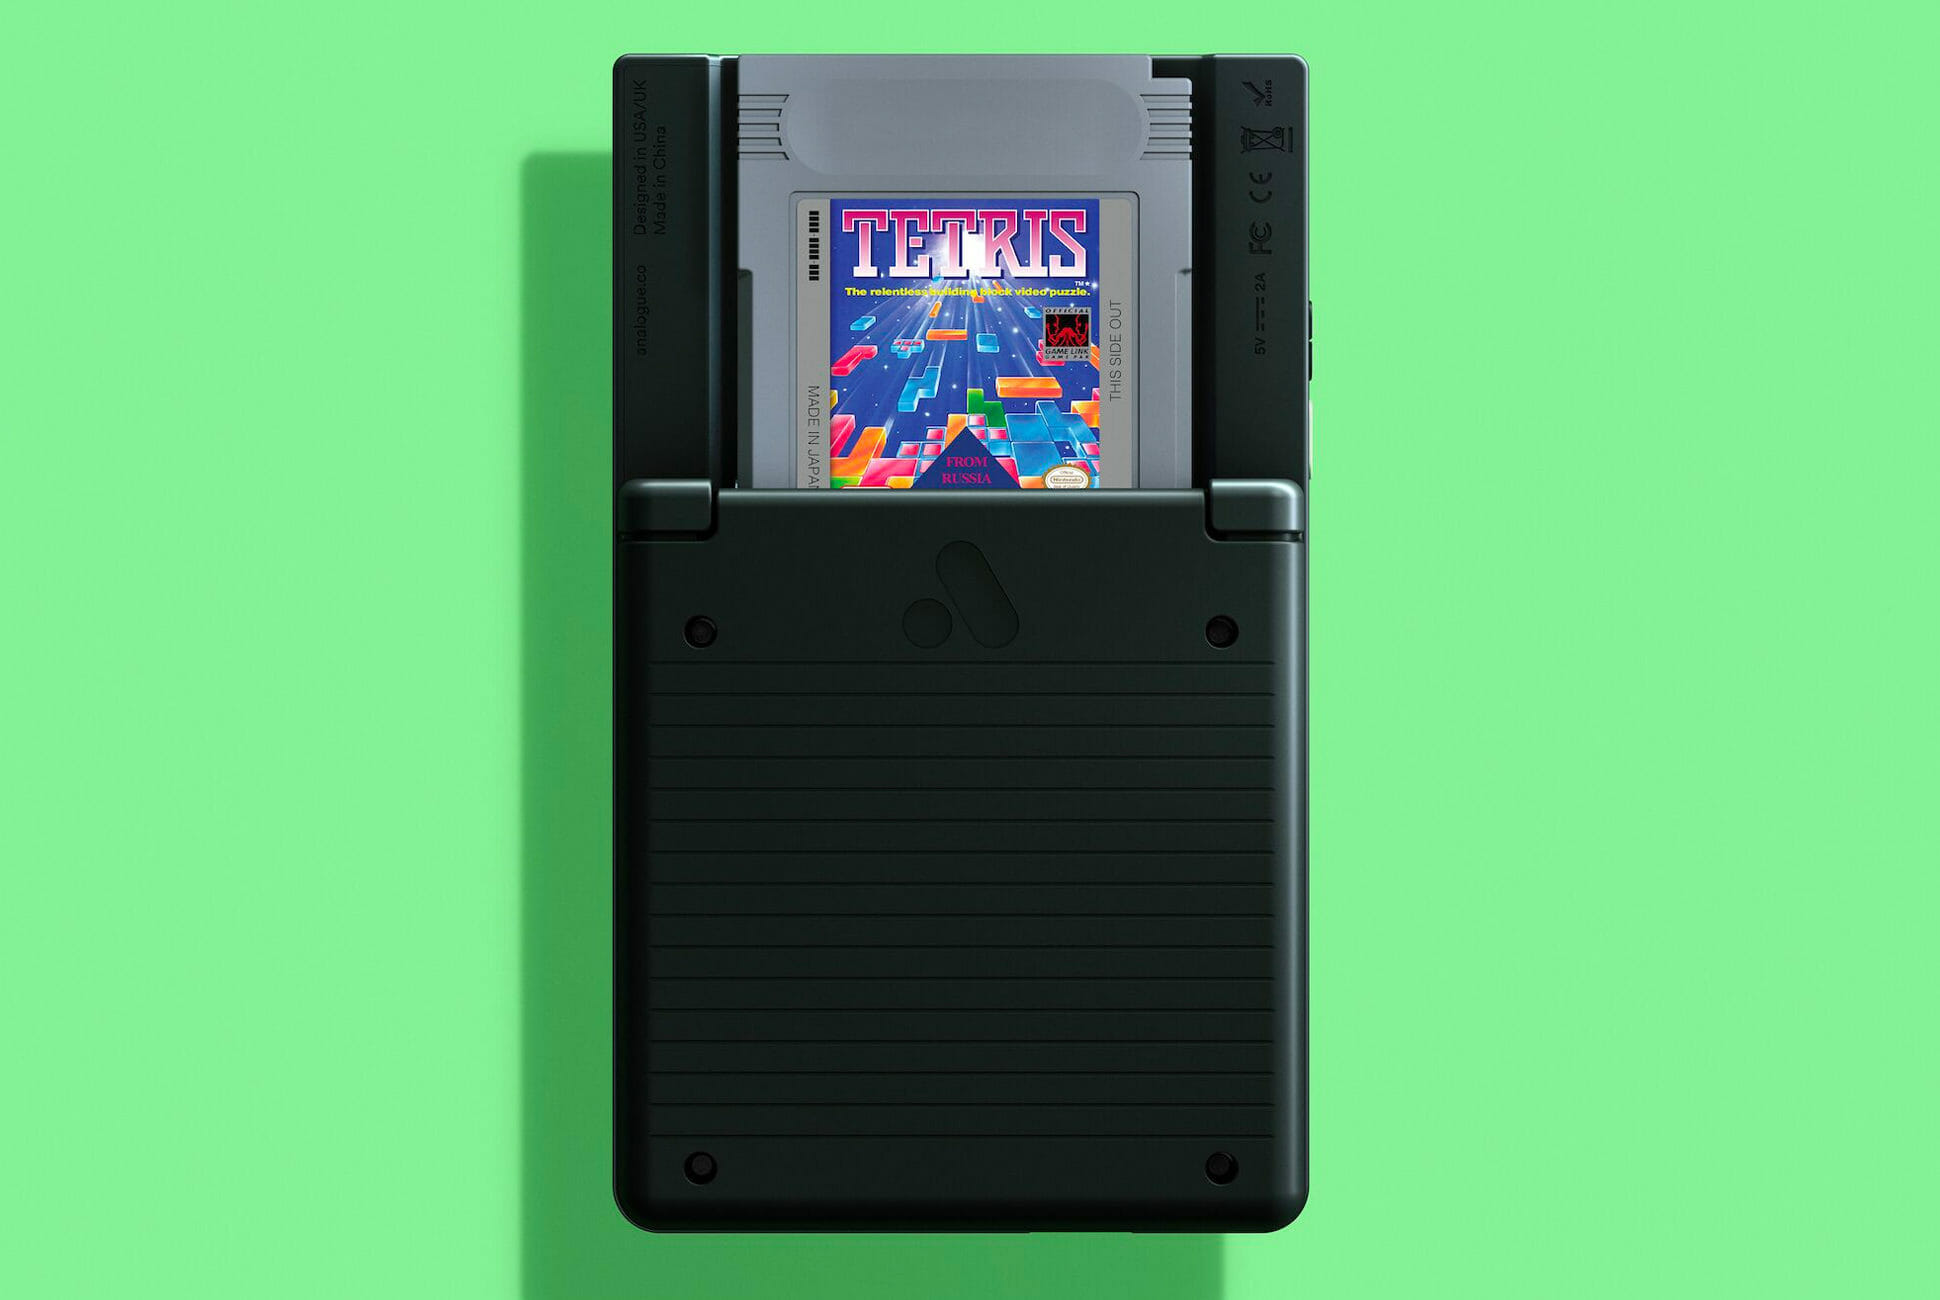 Real Cartridge Support | Analogue Pocket: The Return of the Gameboy in 2020 | Gammicks